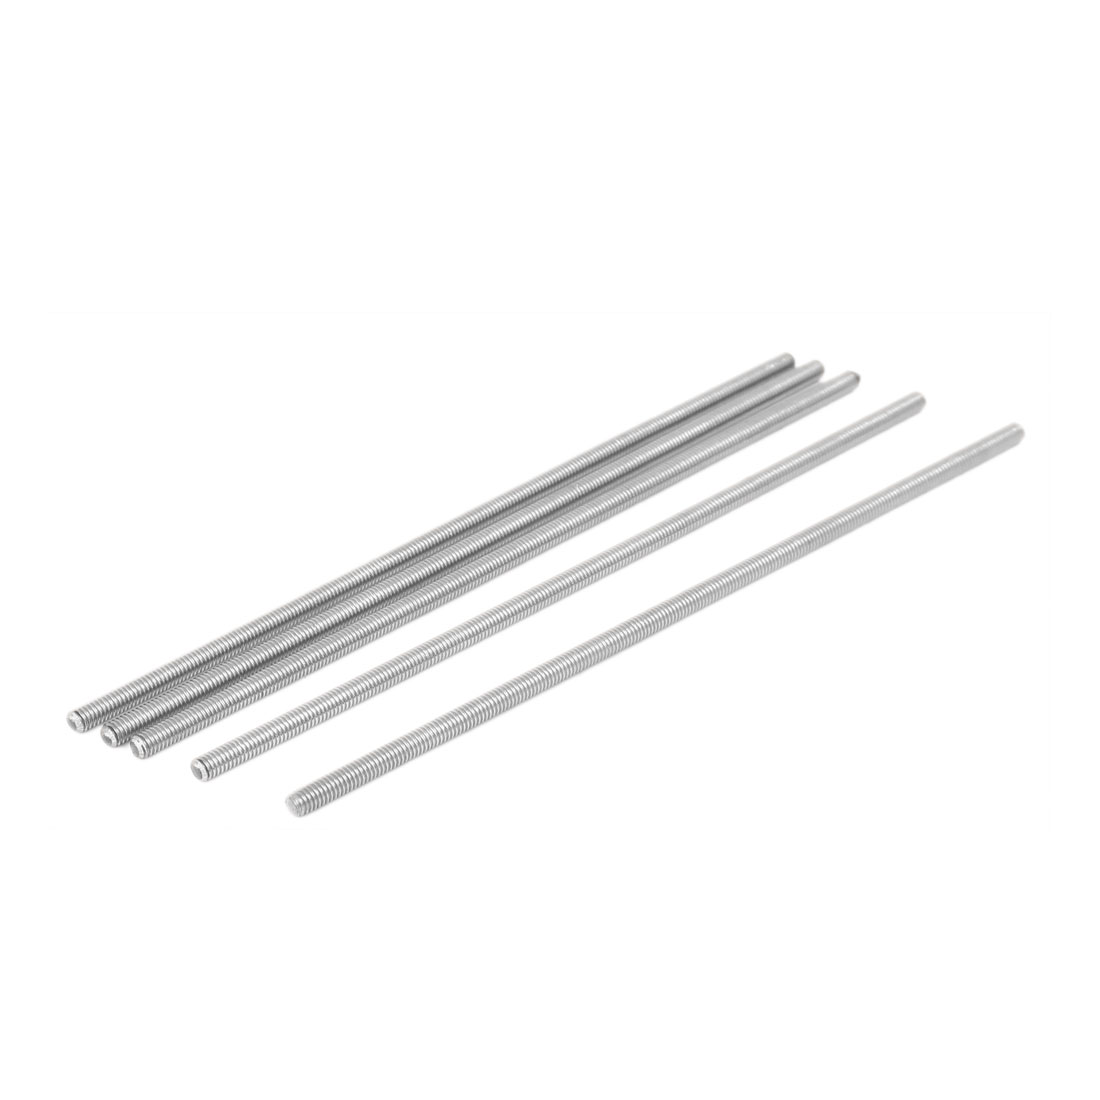 UXCELL M4 X 150Mm 304 Stainless Steel Fully Threaded Rod Bar Studs Silver Tone 5 Pcs